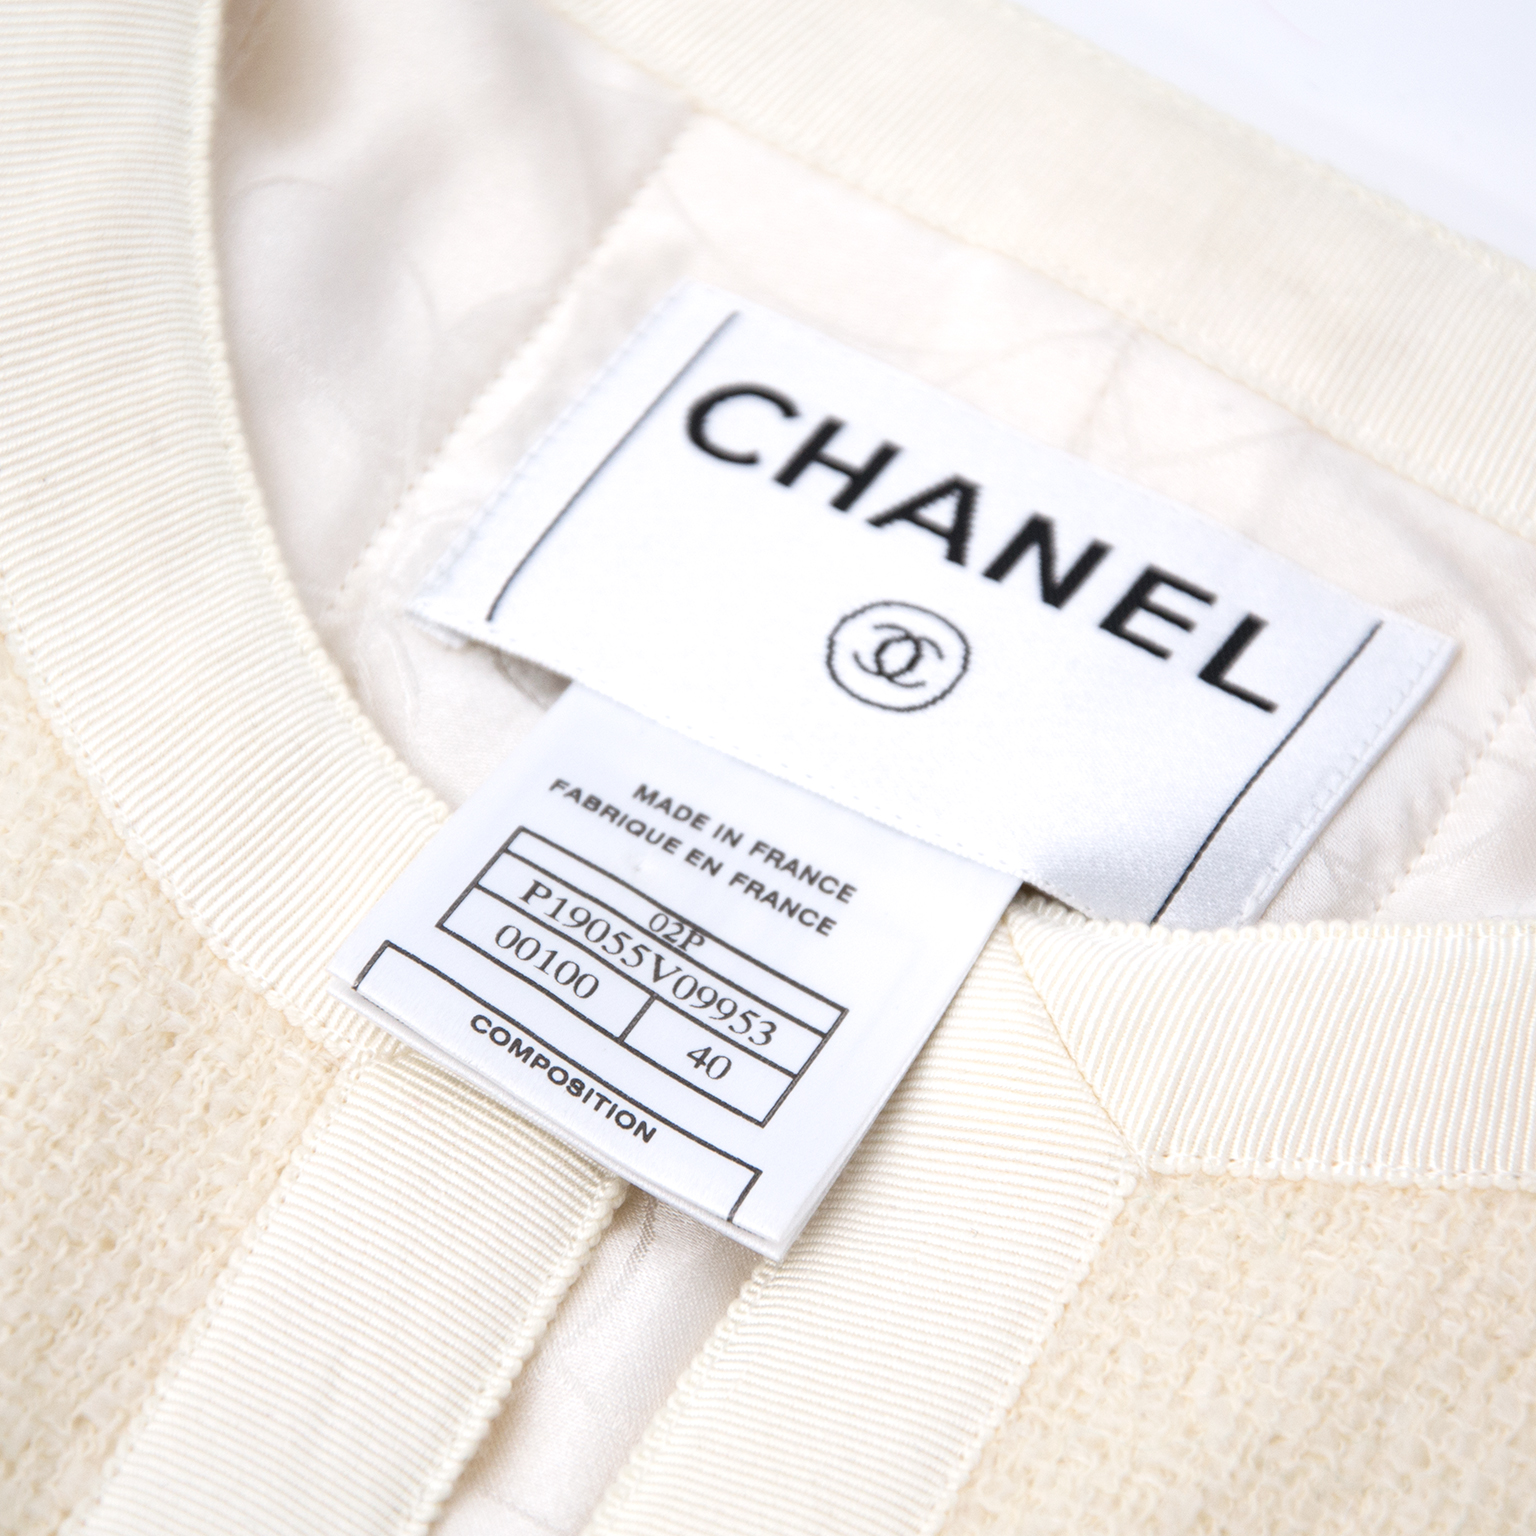 Buy authentic Chanel clothing at Labellov.com.